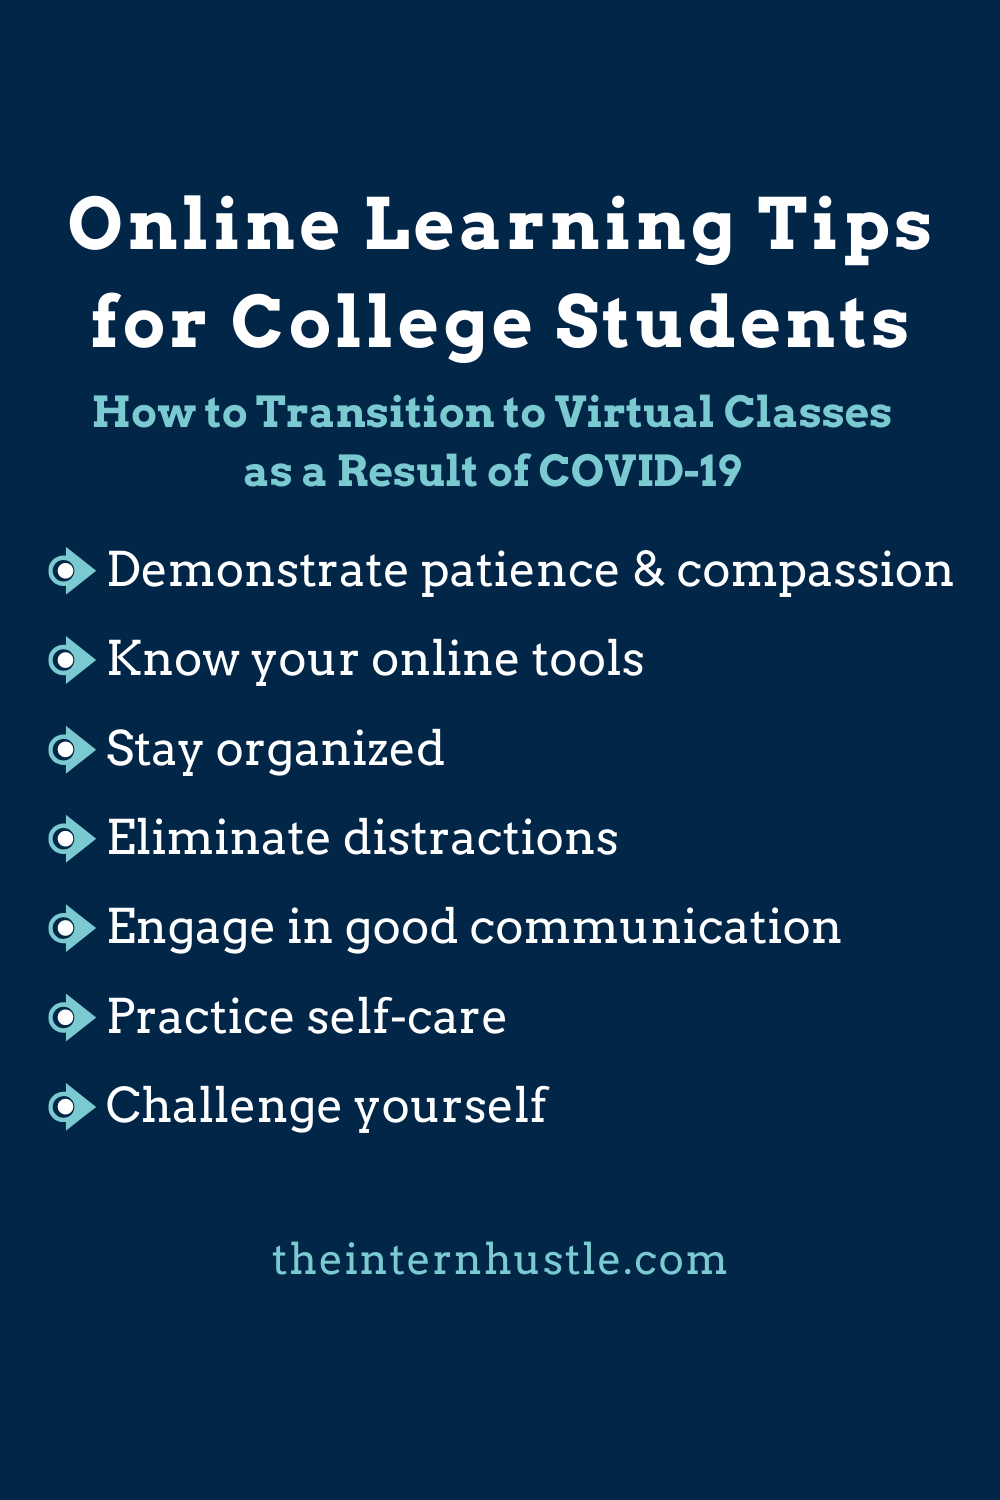 Online Learning Tips for College Students (Amid Coronavirus)